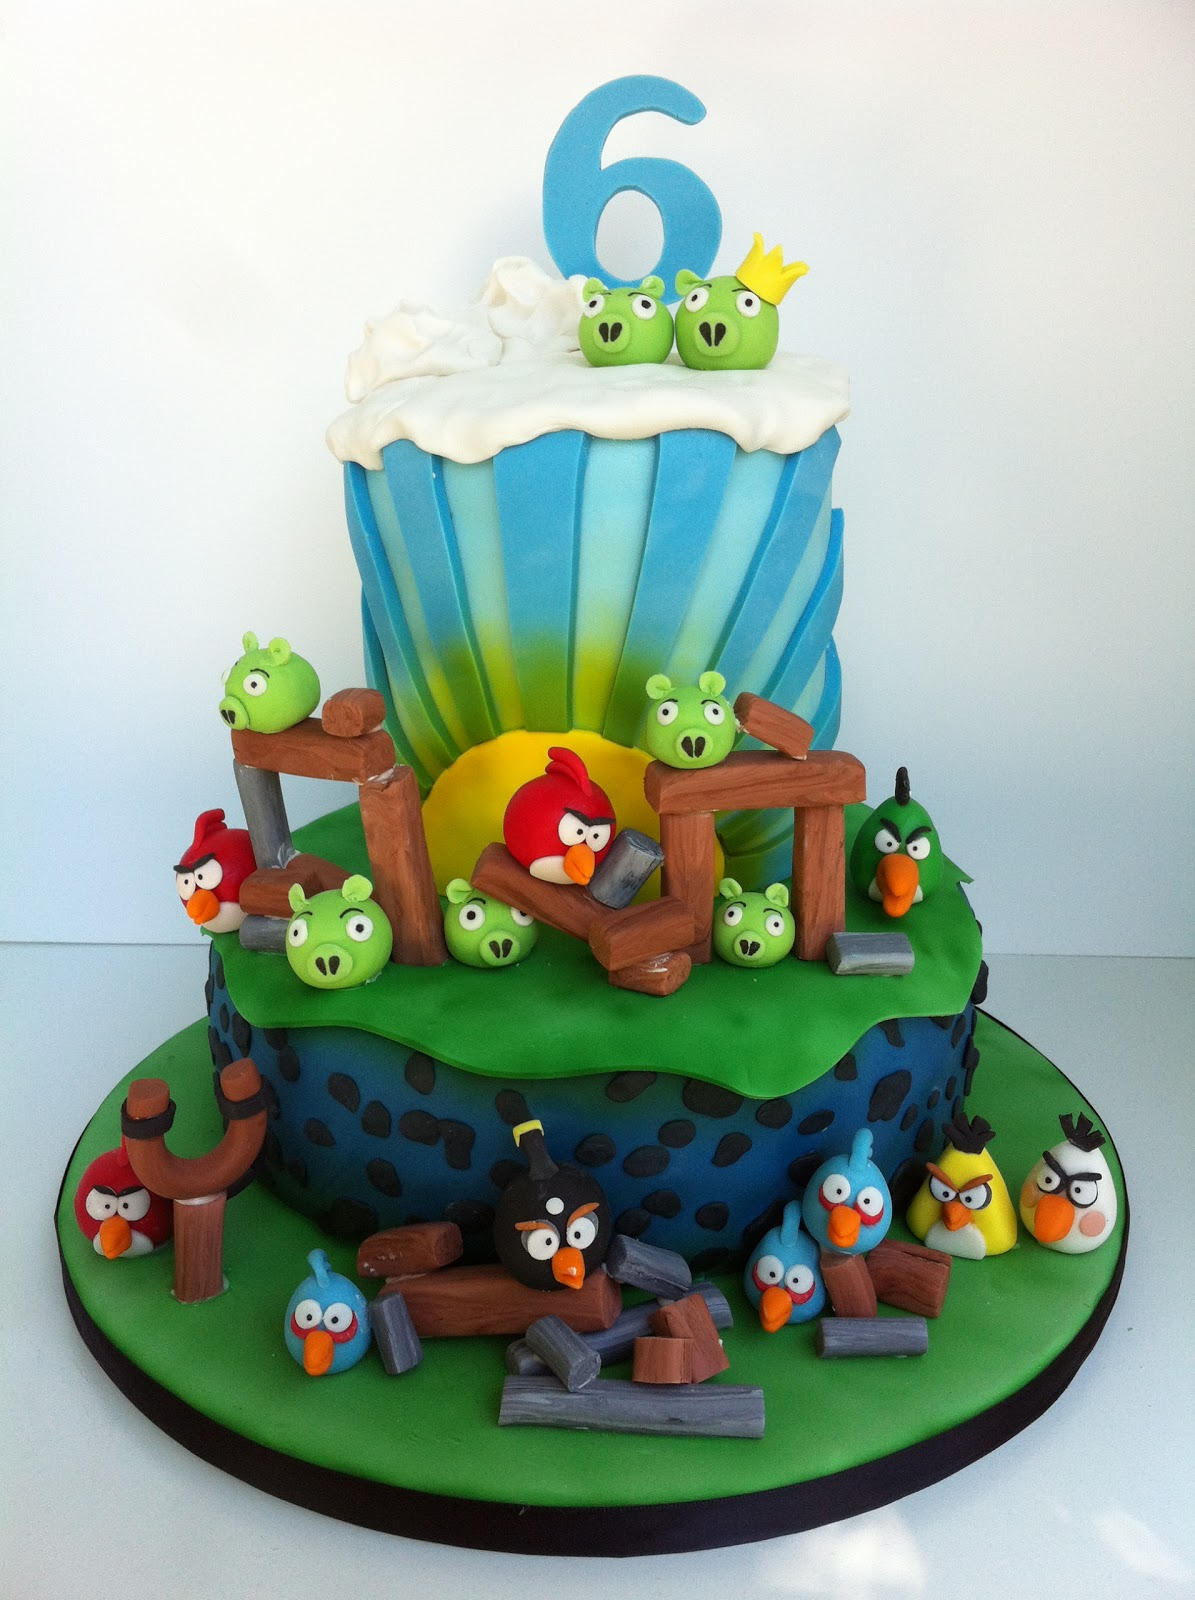 Whimsical By Design Austin S Angry Birds Birthday Cake